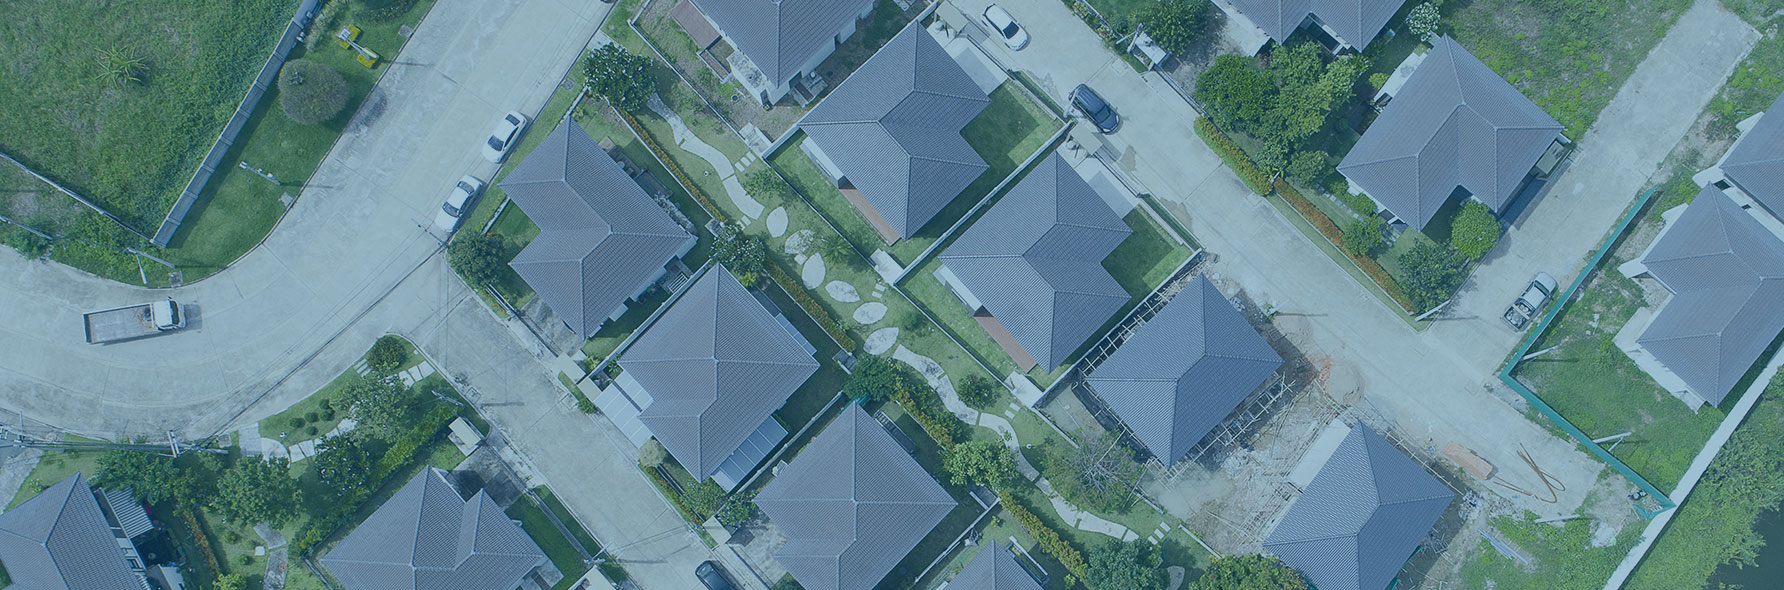 birds eye view of residential properties